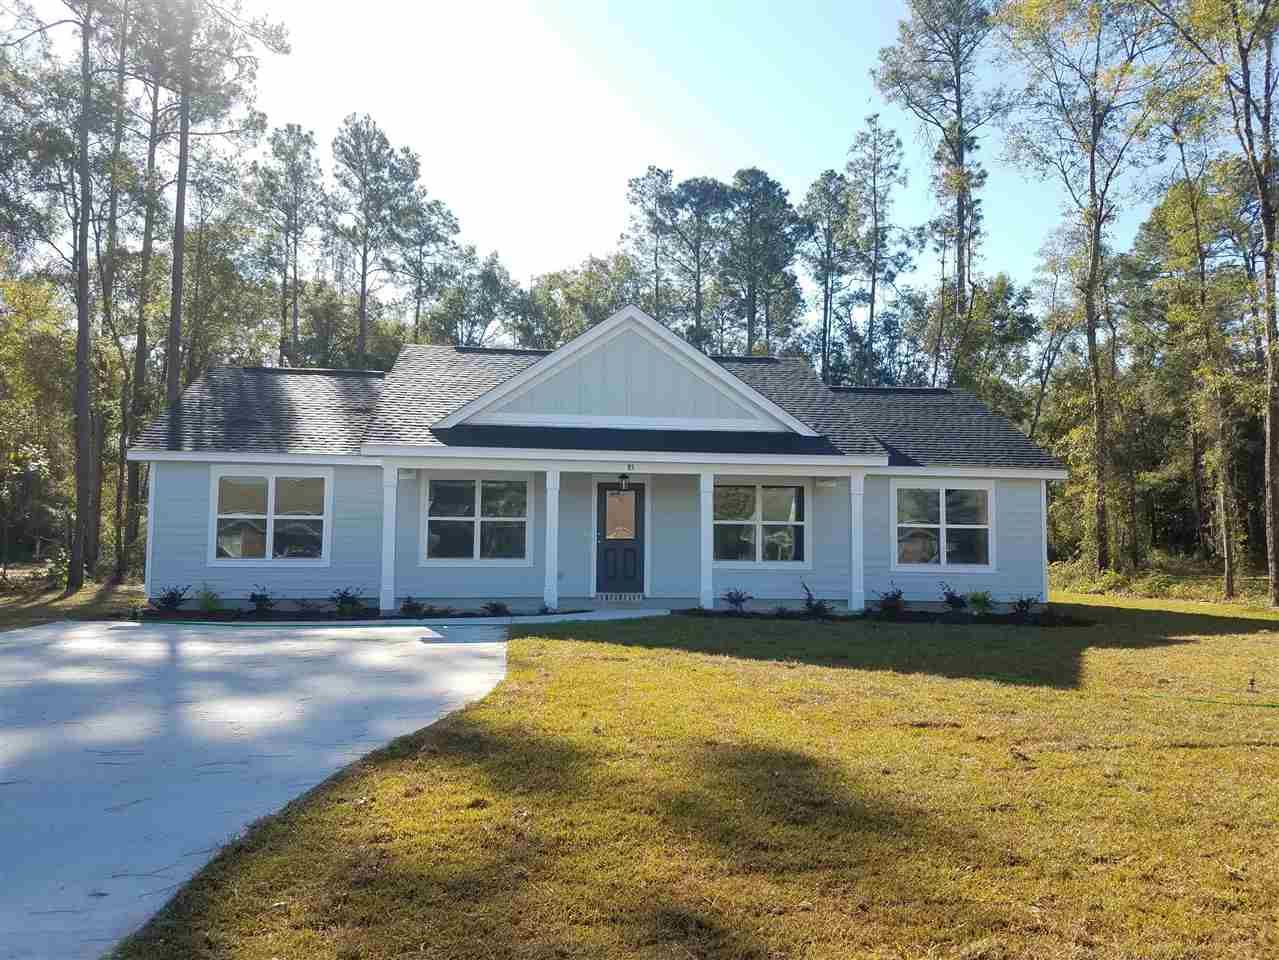 Lot 6 Lee Street, Crawfordville, FL 32327 - MLS#: 325555